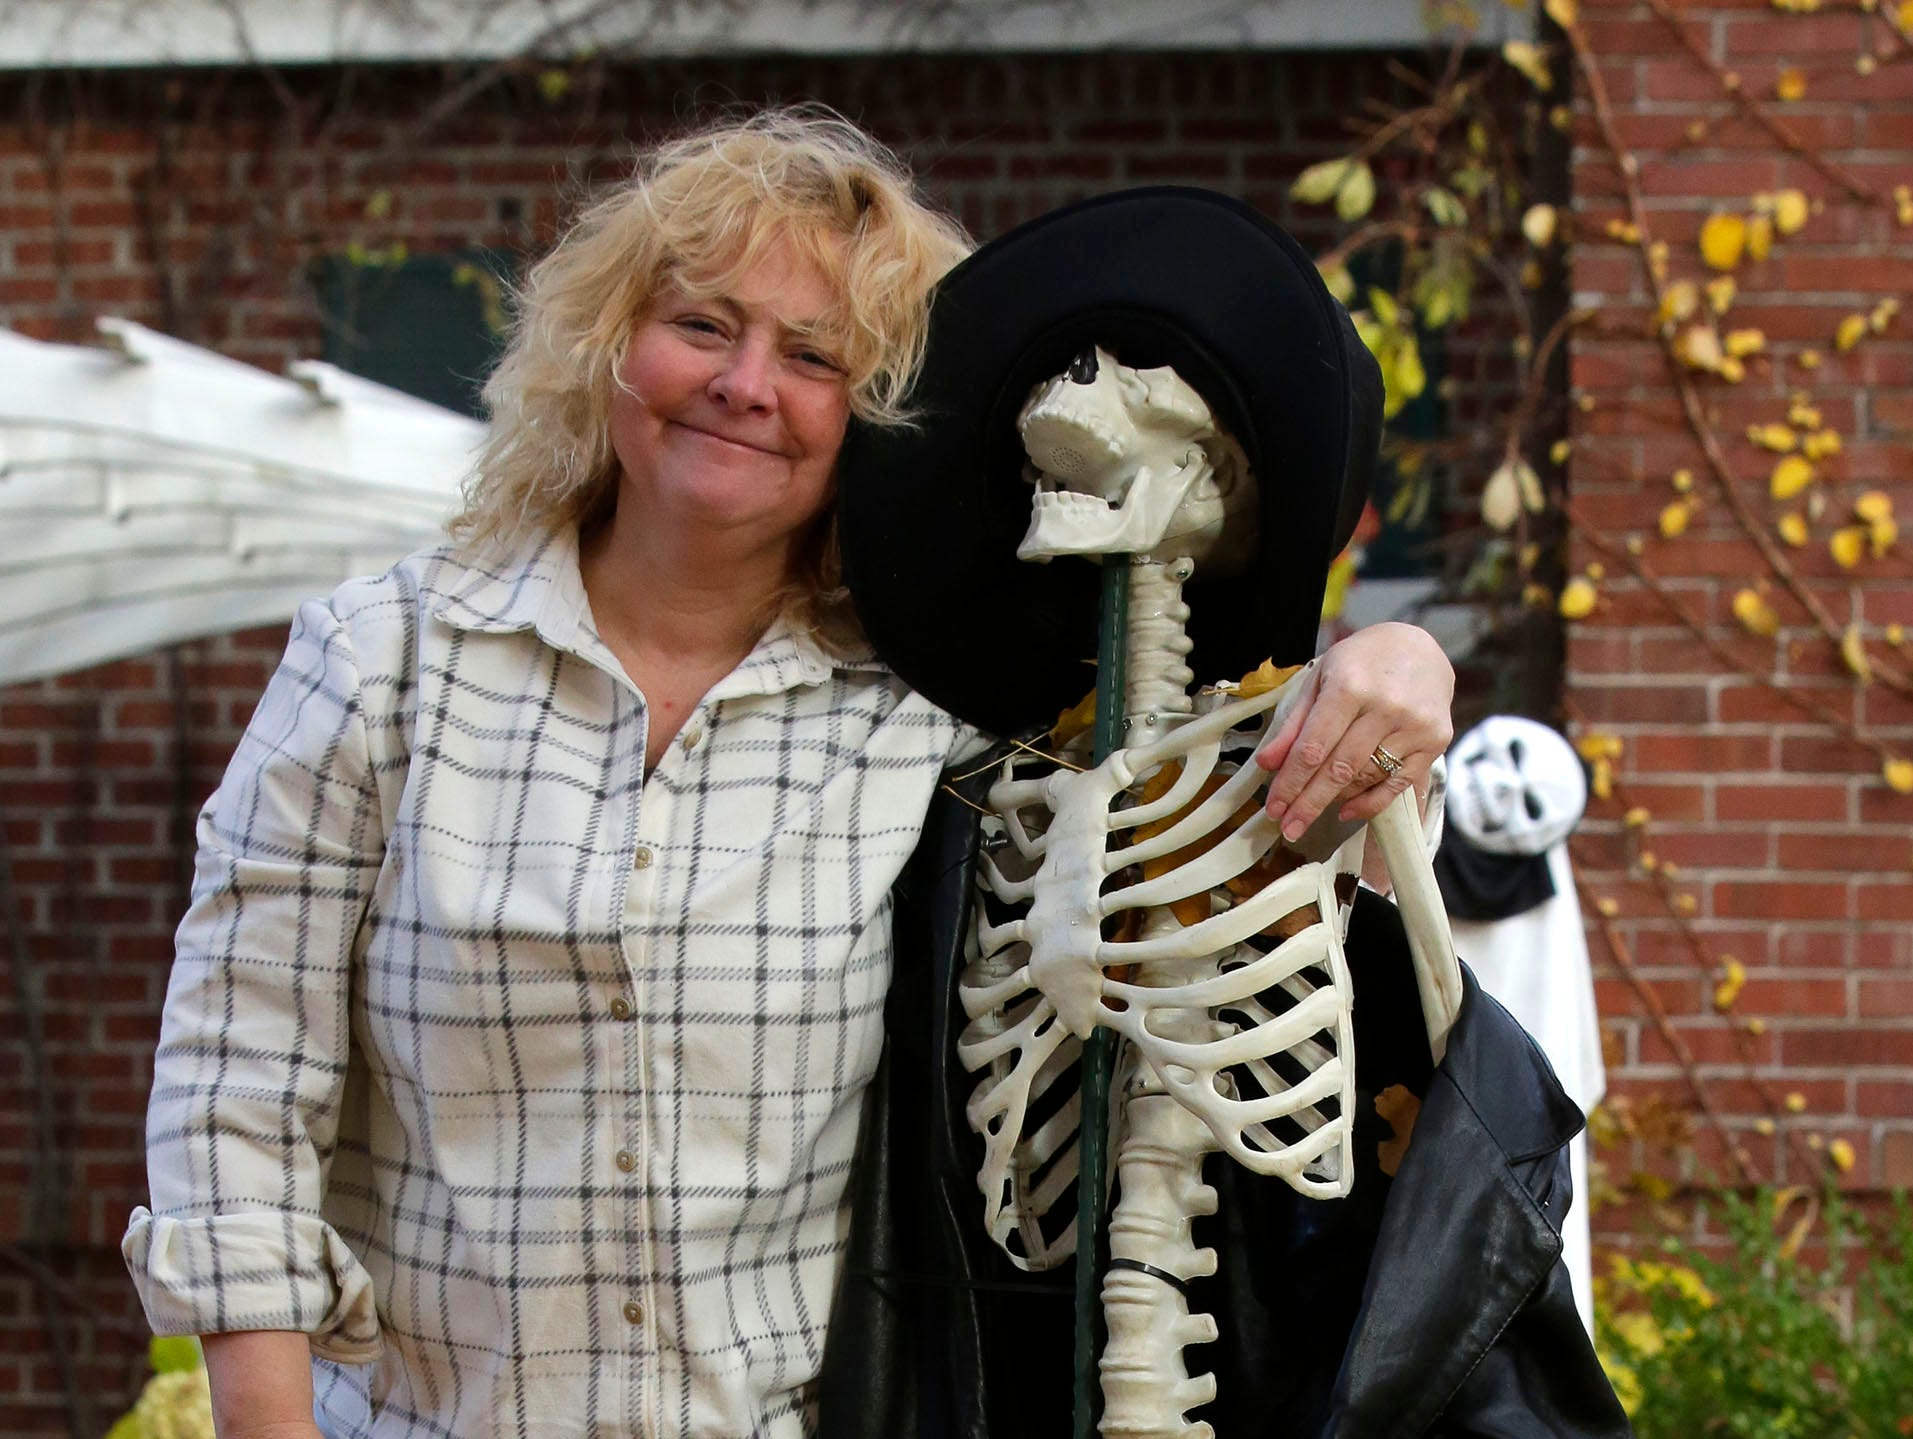 Sarah Fritz of Sheboygan poses with one of her scary skeletons during Trick or Treat, Wednesday, October 31, 2018, in Sheboygan, Wis.